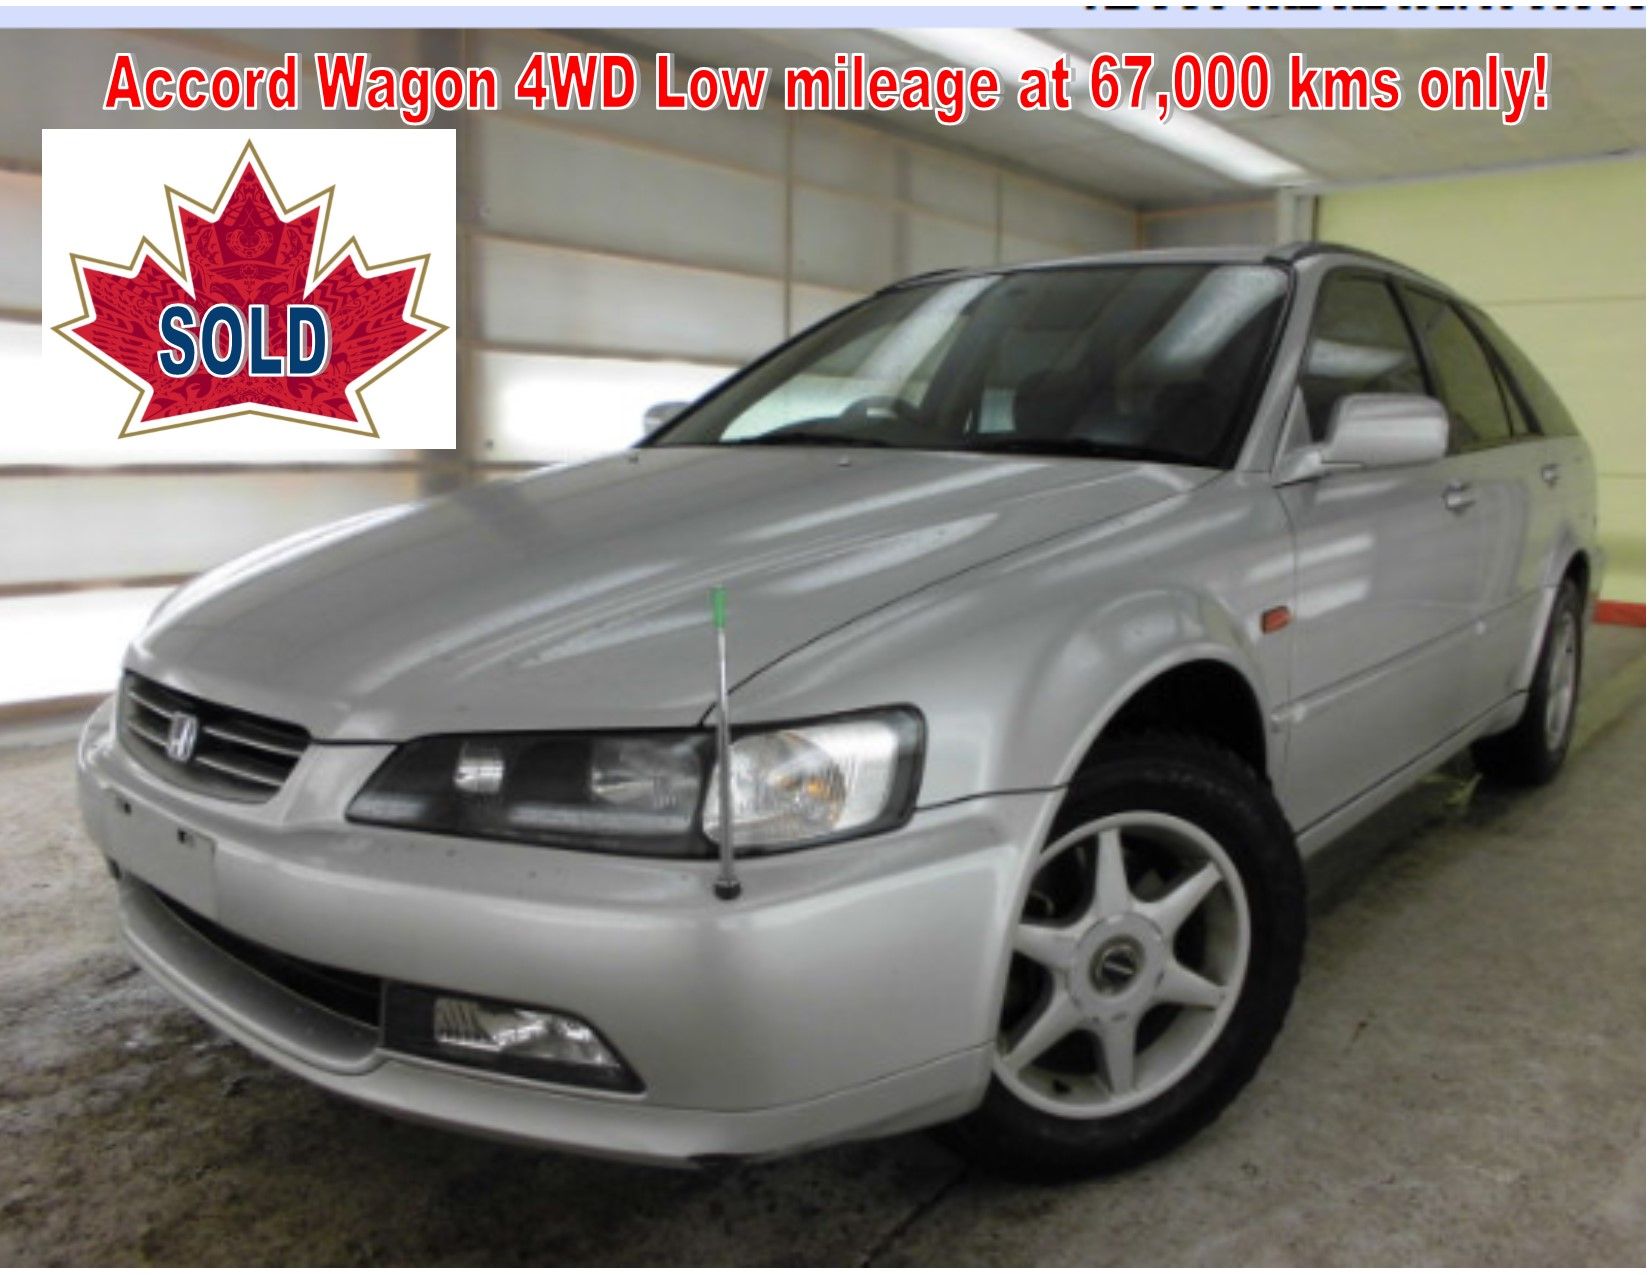 1997 Honda Accord Wagon 4WD 67km